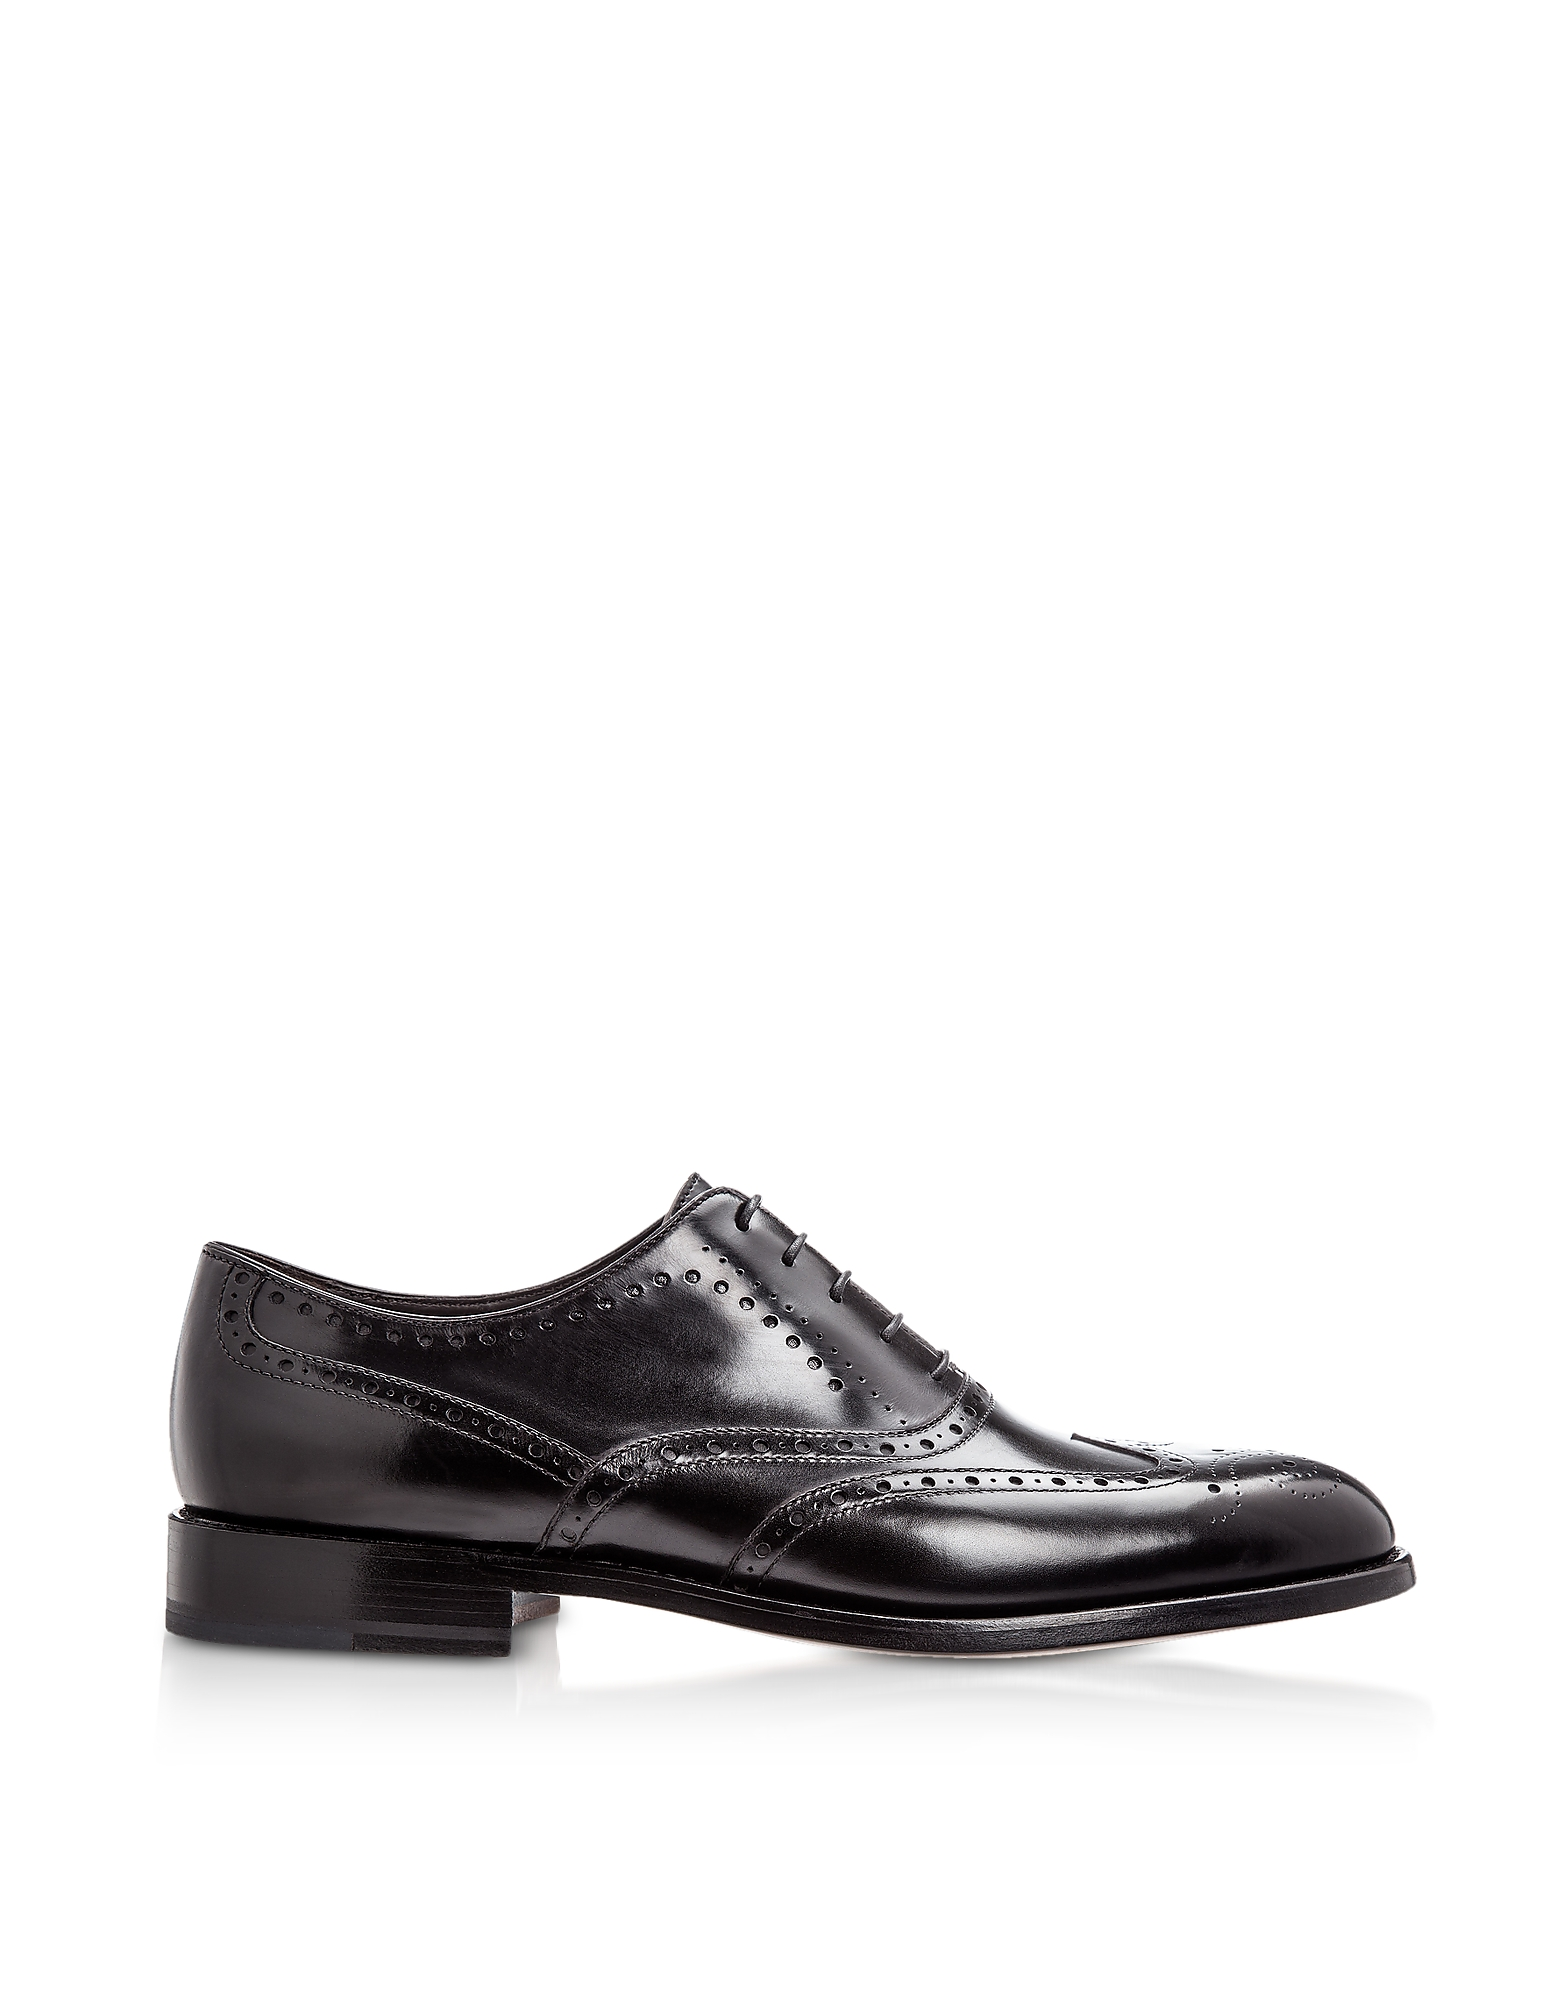 Moreschi Shoes, Boston Black Calfskin Oxford Shoes